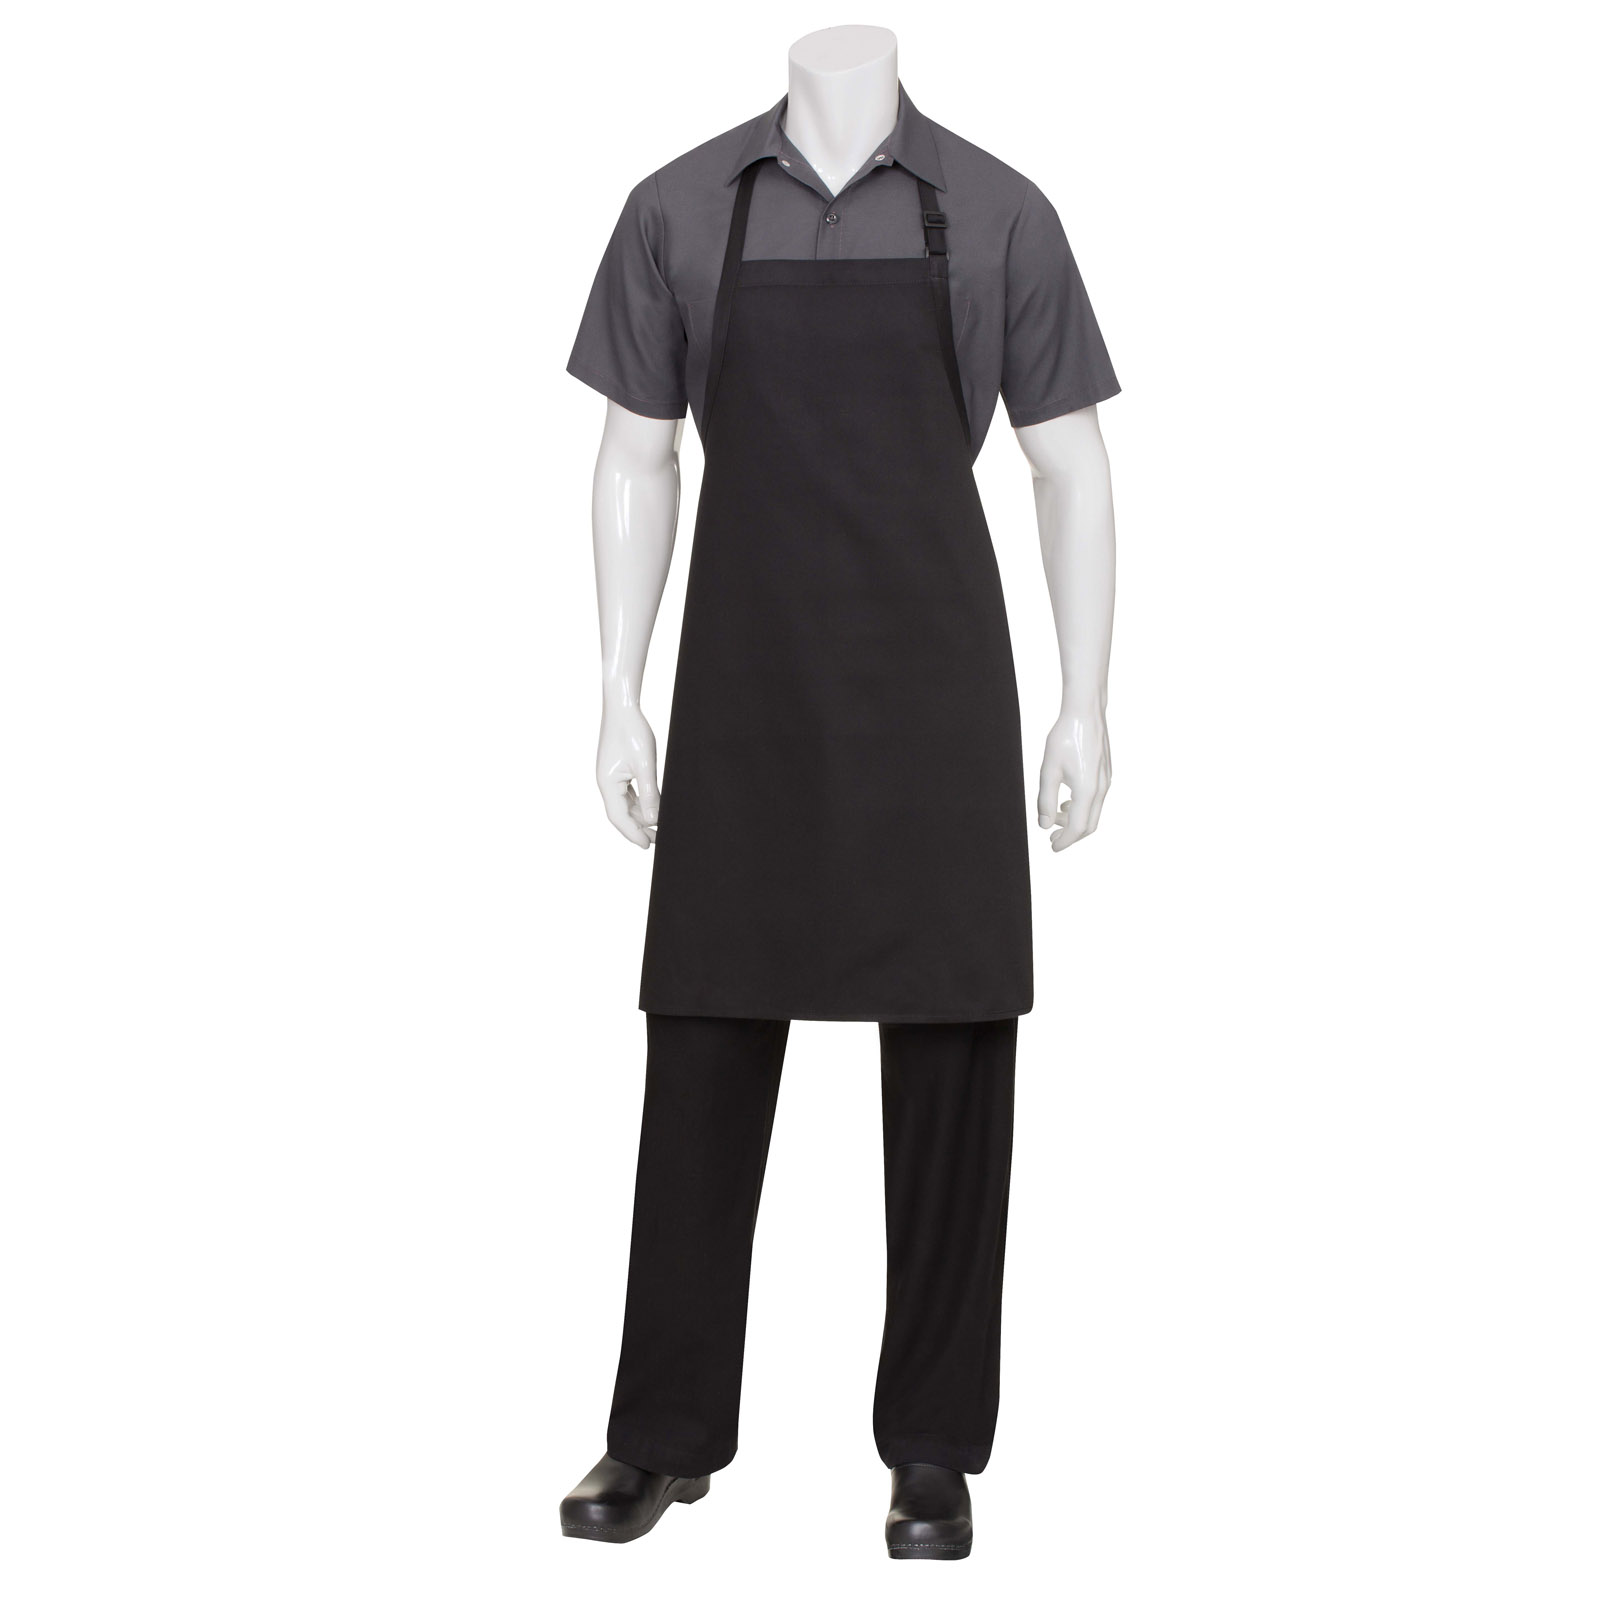 Chef Works F8 BLK0 bib apron